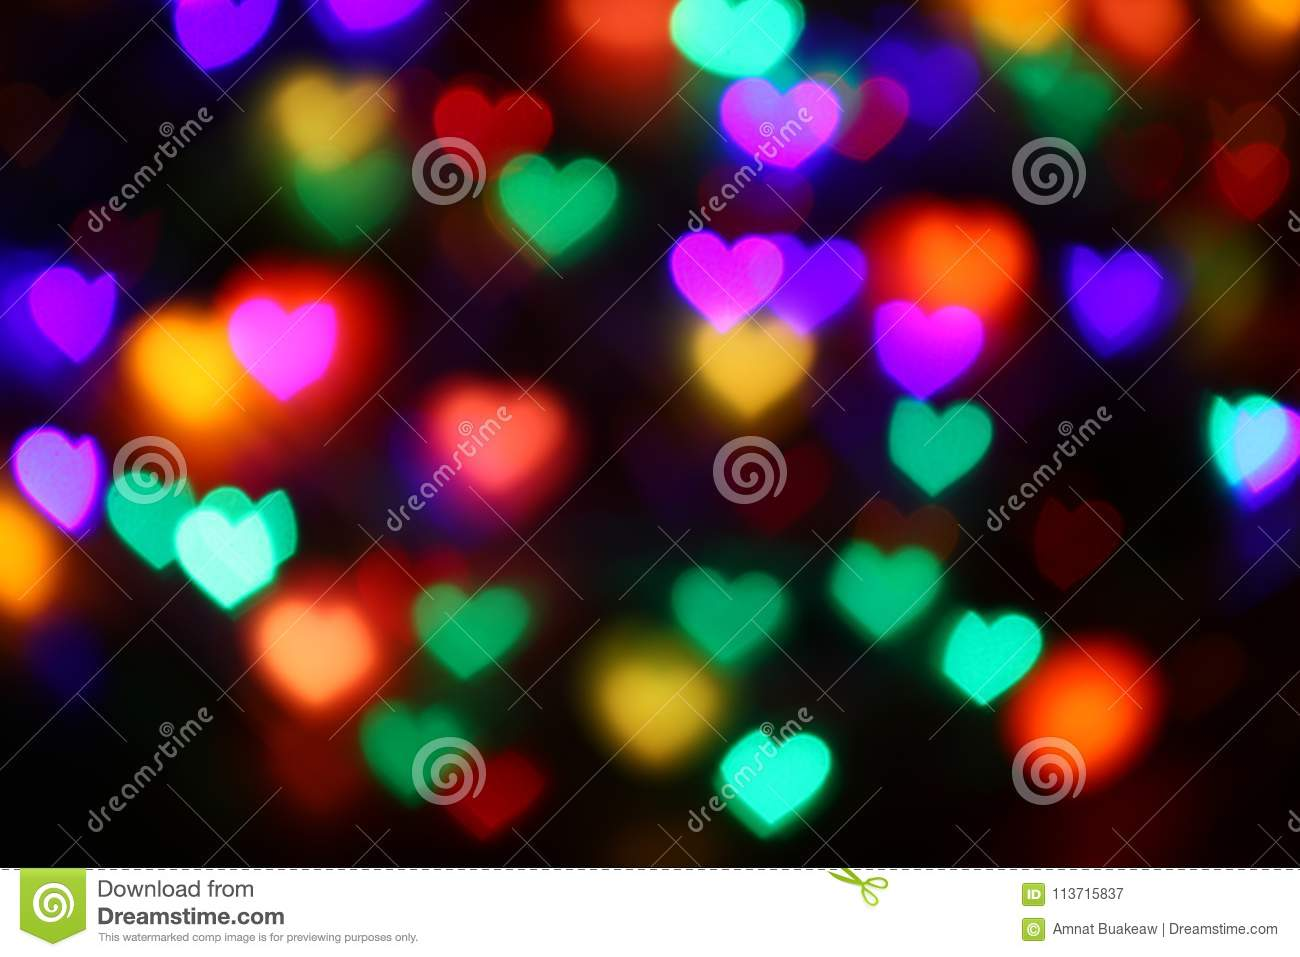 Best Wallpaper Night Colorful - valentines-colorful-heart-shaped-bokeh-black-background-lighting-bokeh-decoration-night-wallpaper-valentine-valentines-113715837  Pictures.jpg